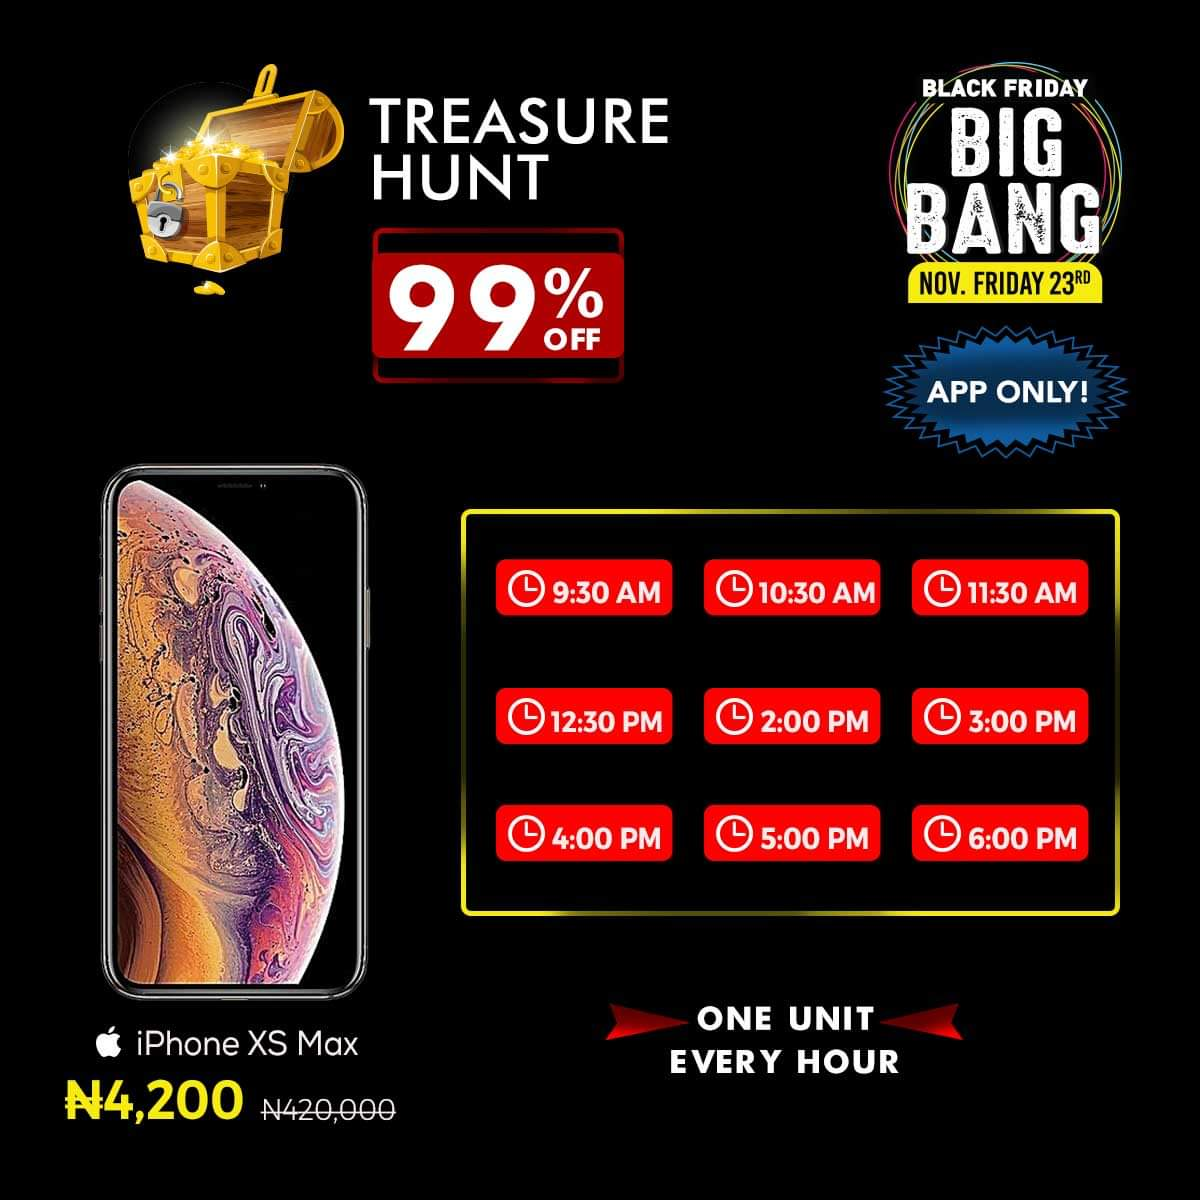 Jumia Black Friday Big Bang Sales